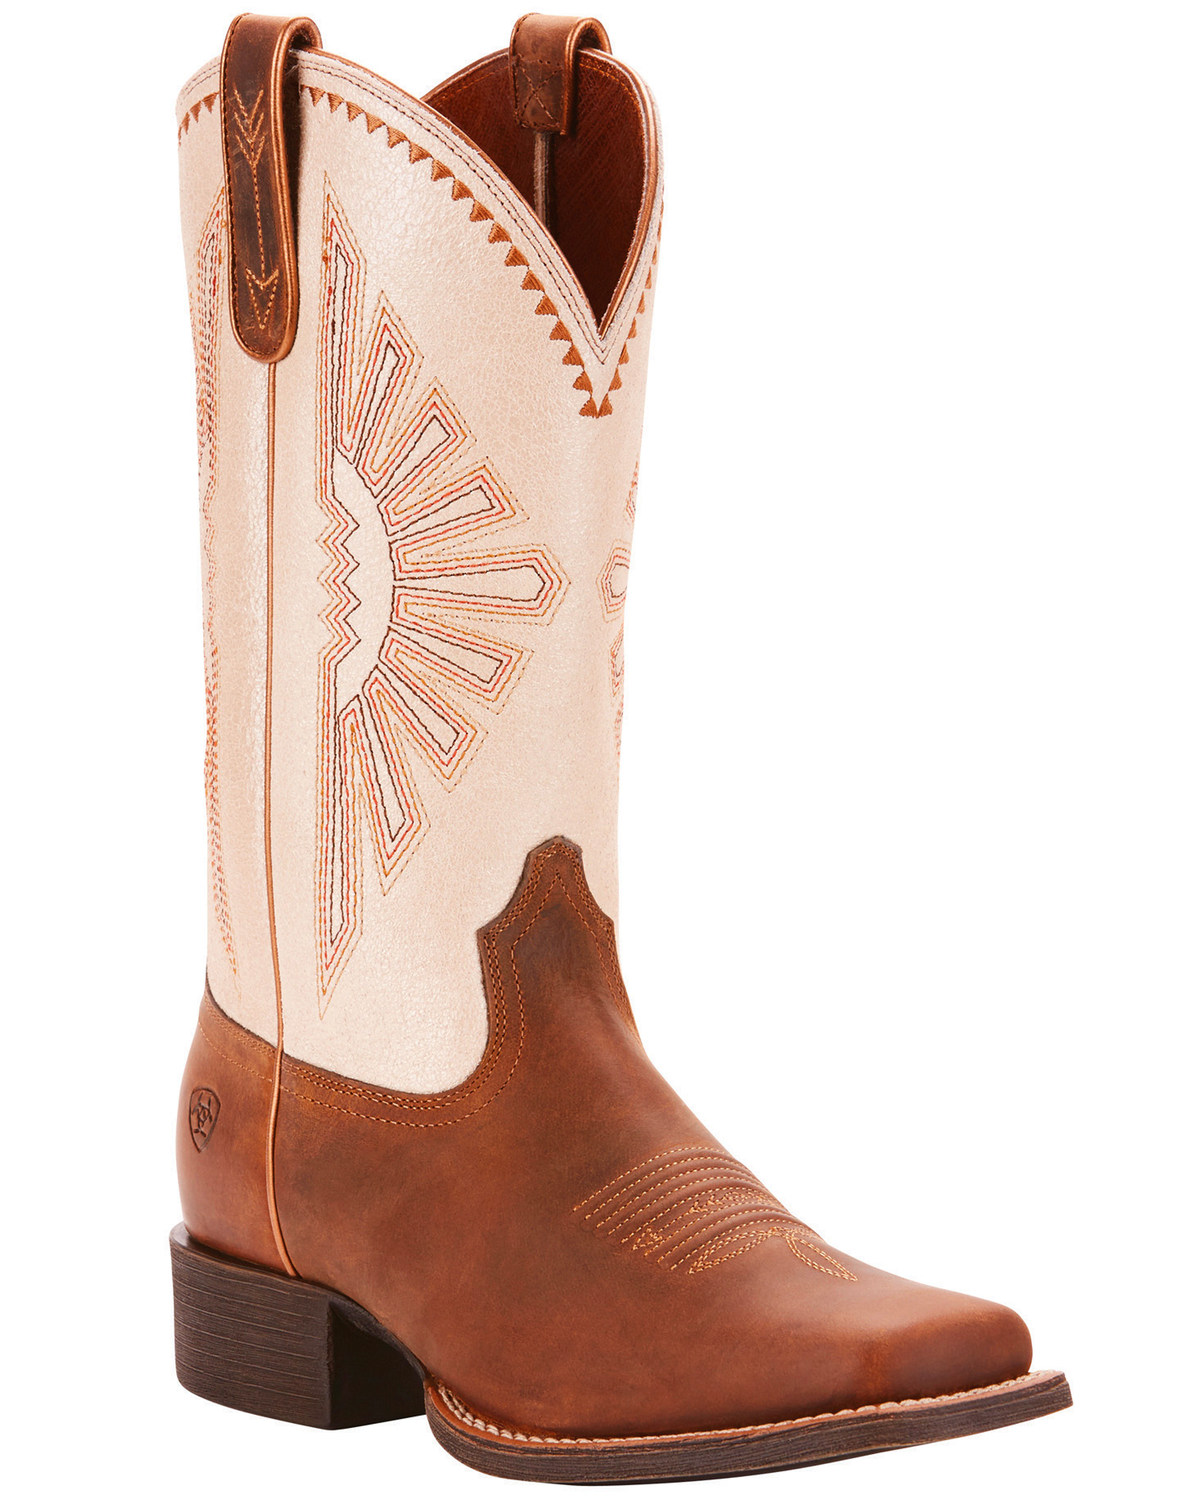 145d3838052 Ariat Women's Round Up Rio Western Performance Boots - Square Toe